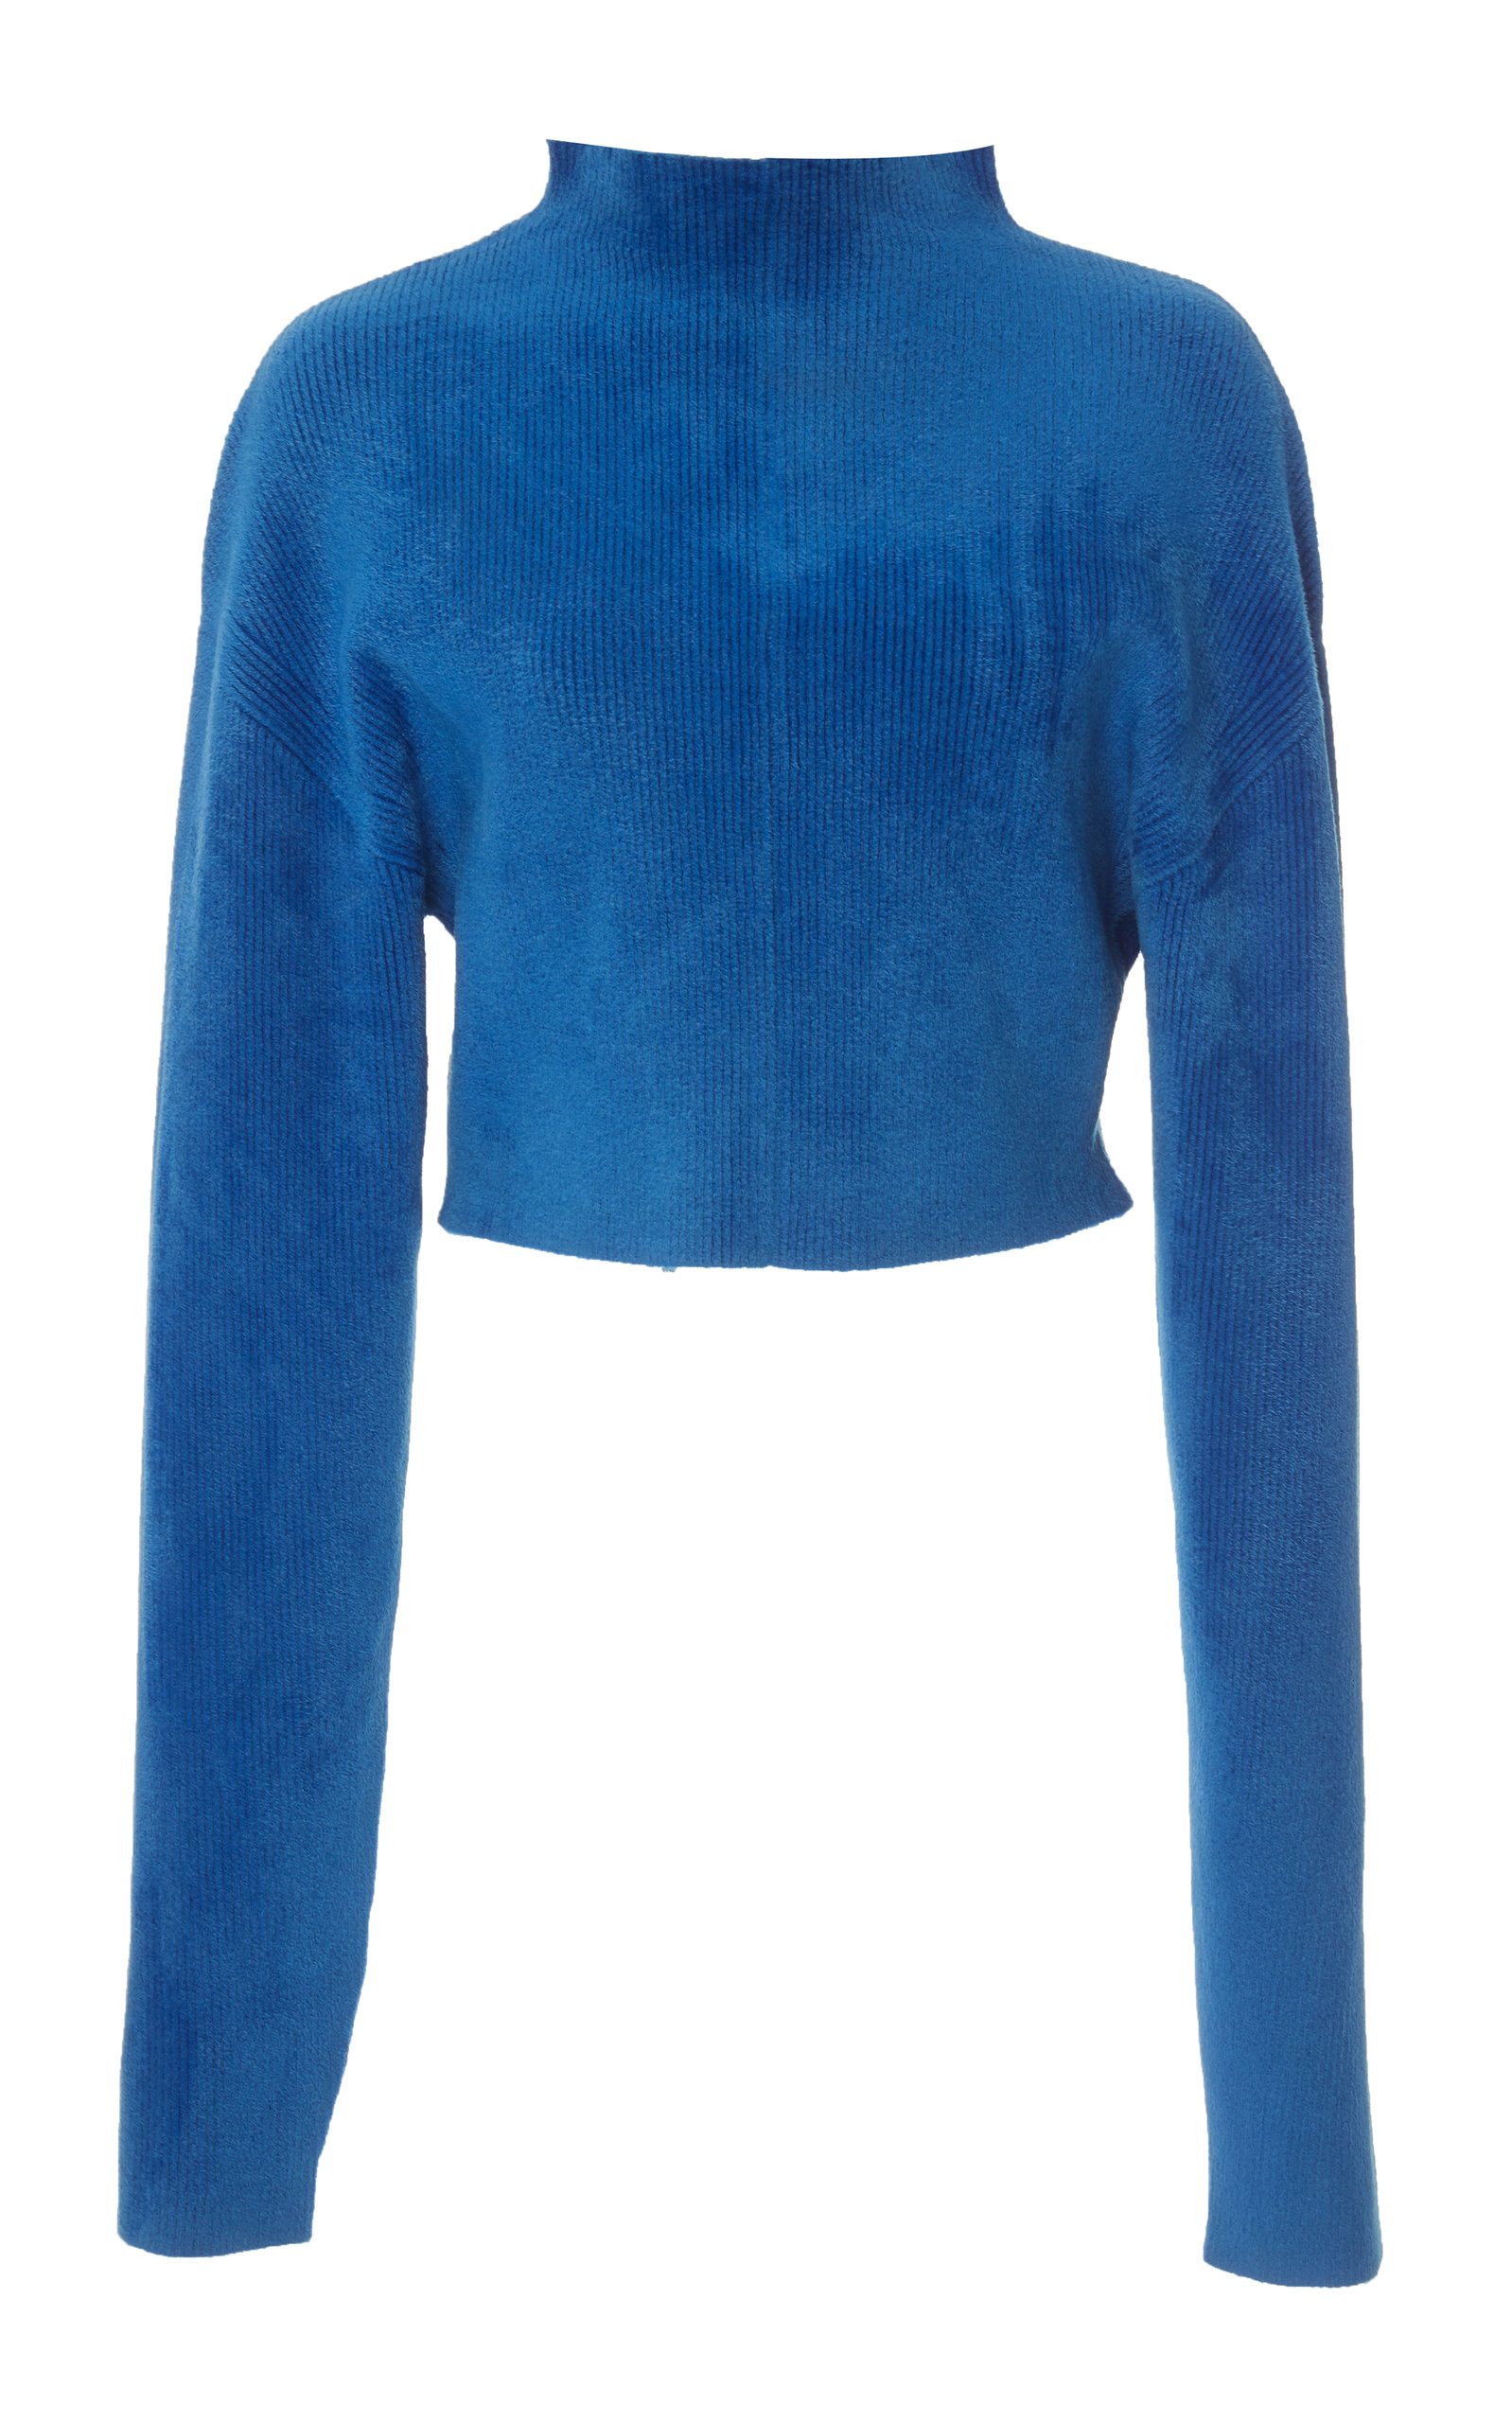 Chenille Cropped Mockneck Top Sally Lapointe Cheap Sale Cheapest Huge Surprise For Sale Clearance Wide Range Of Discount Geniue Stockist V4aij